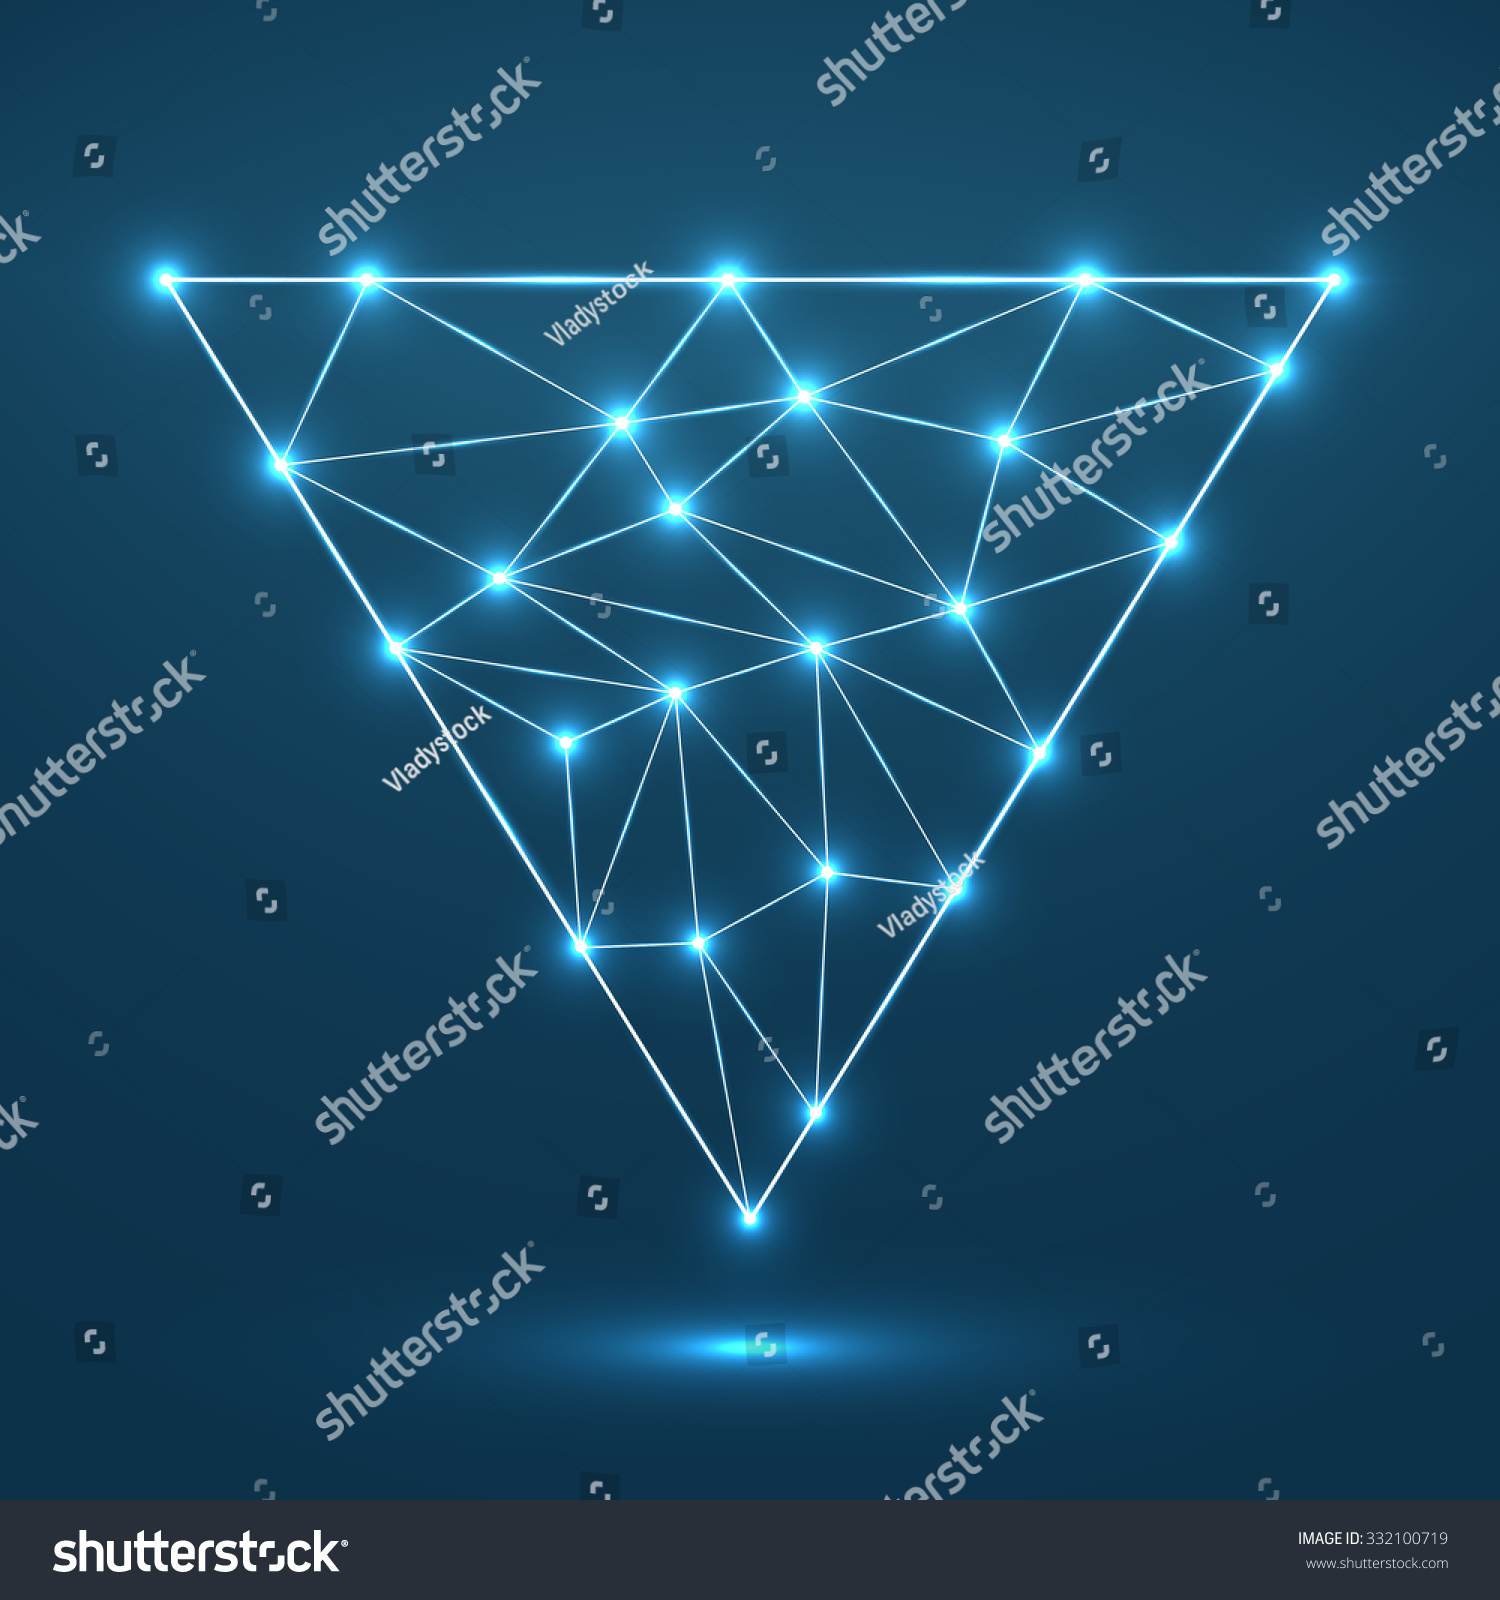 Wireframe mesh polygonal background. Abstract form with connected ...